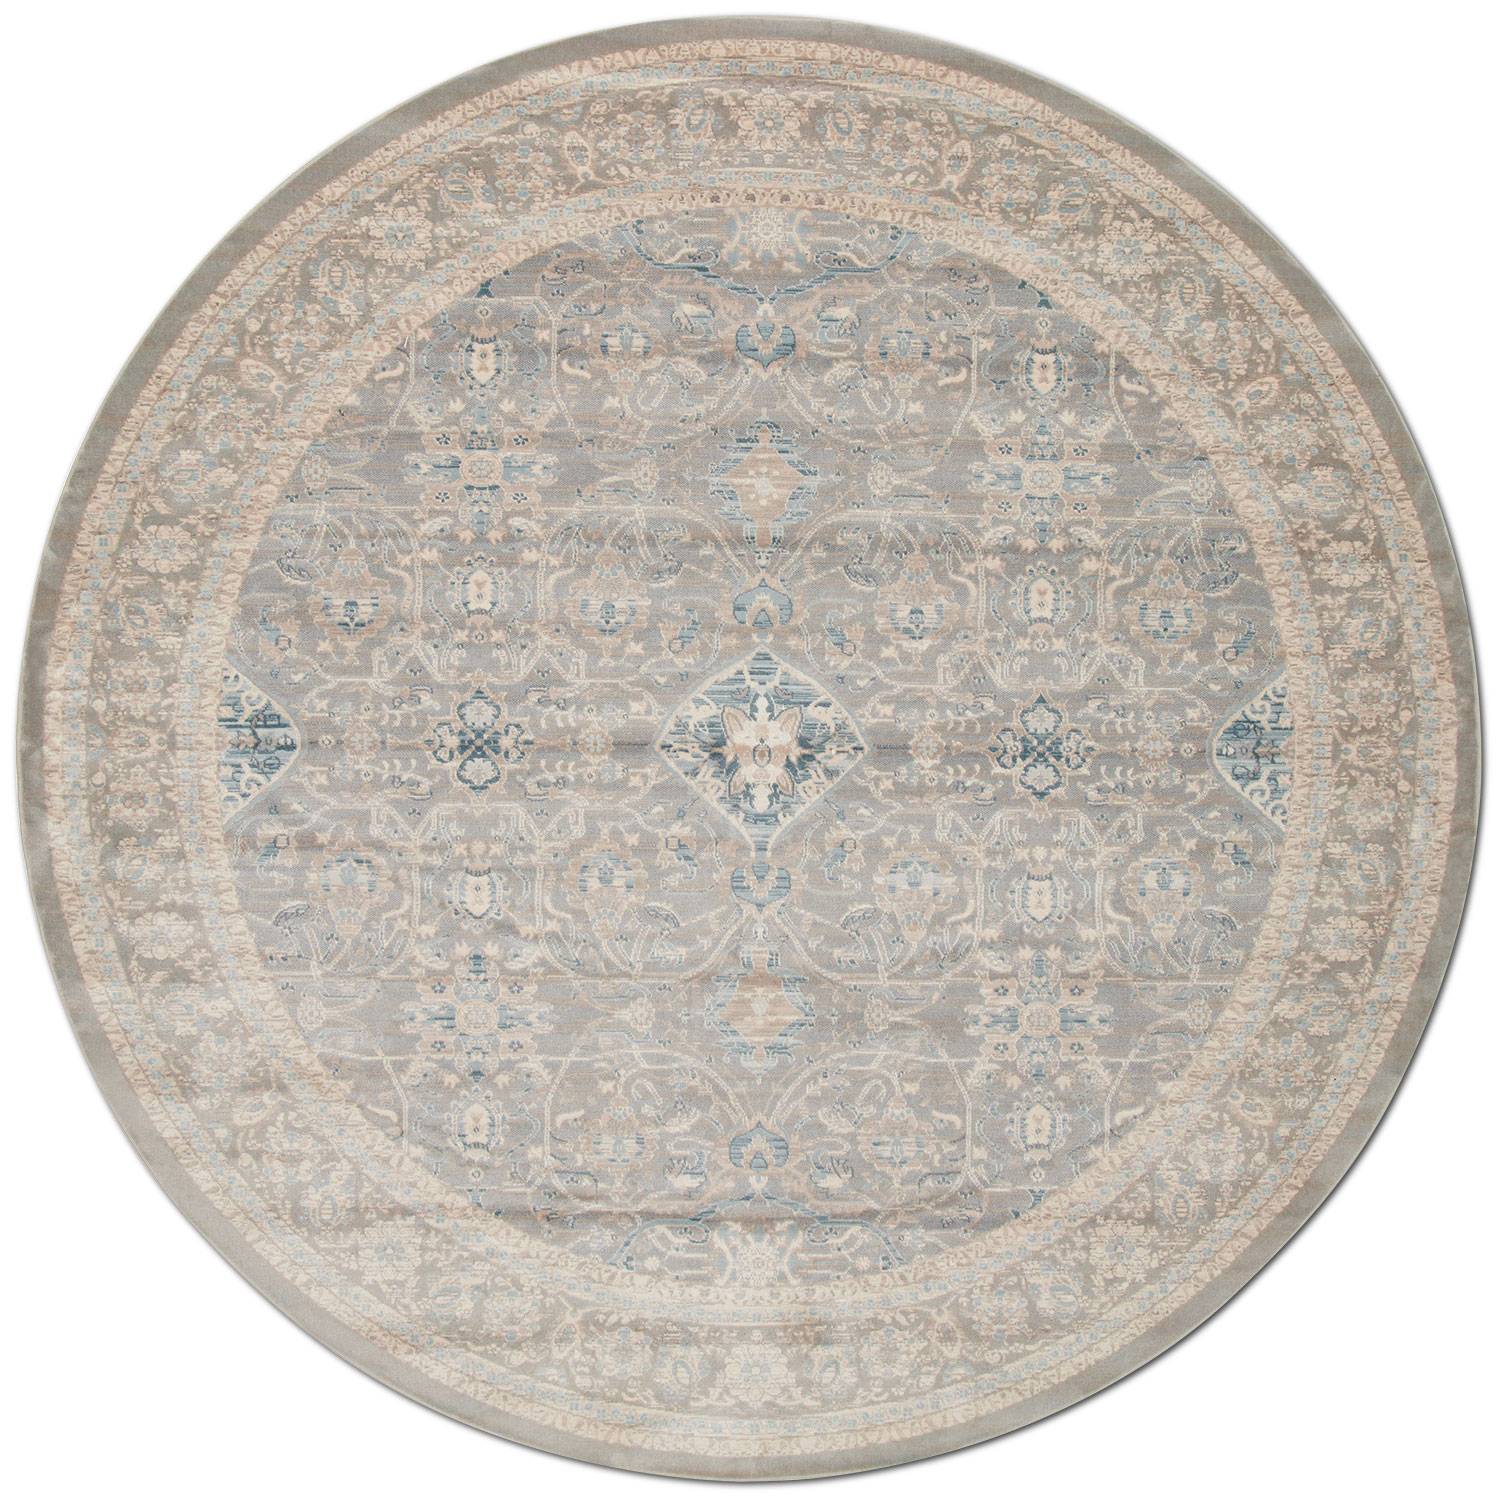 Rugs - Ella Rose 9' Round Rug - Steel